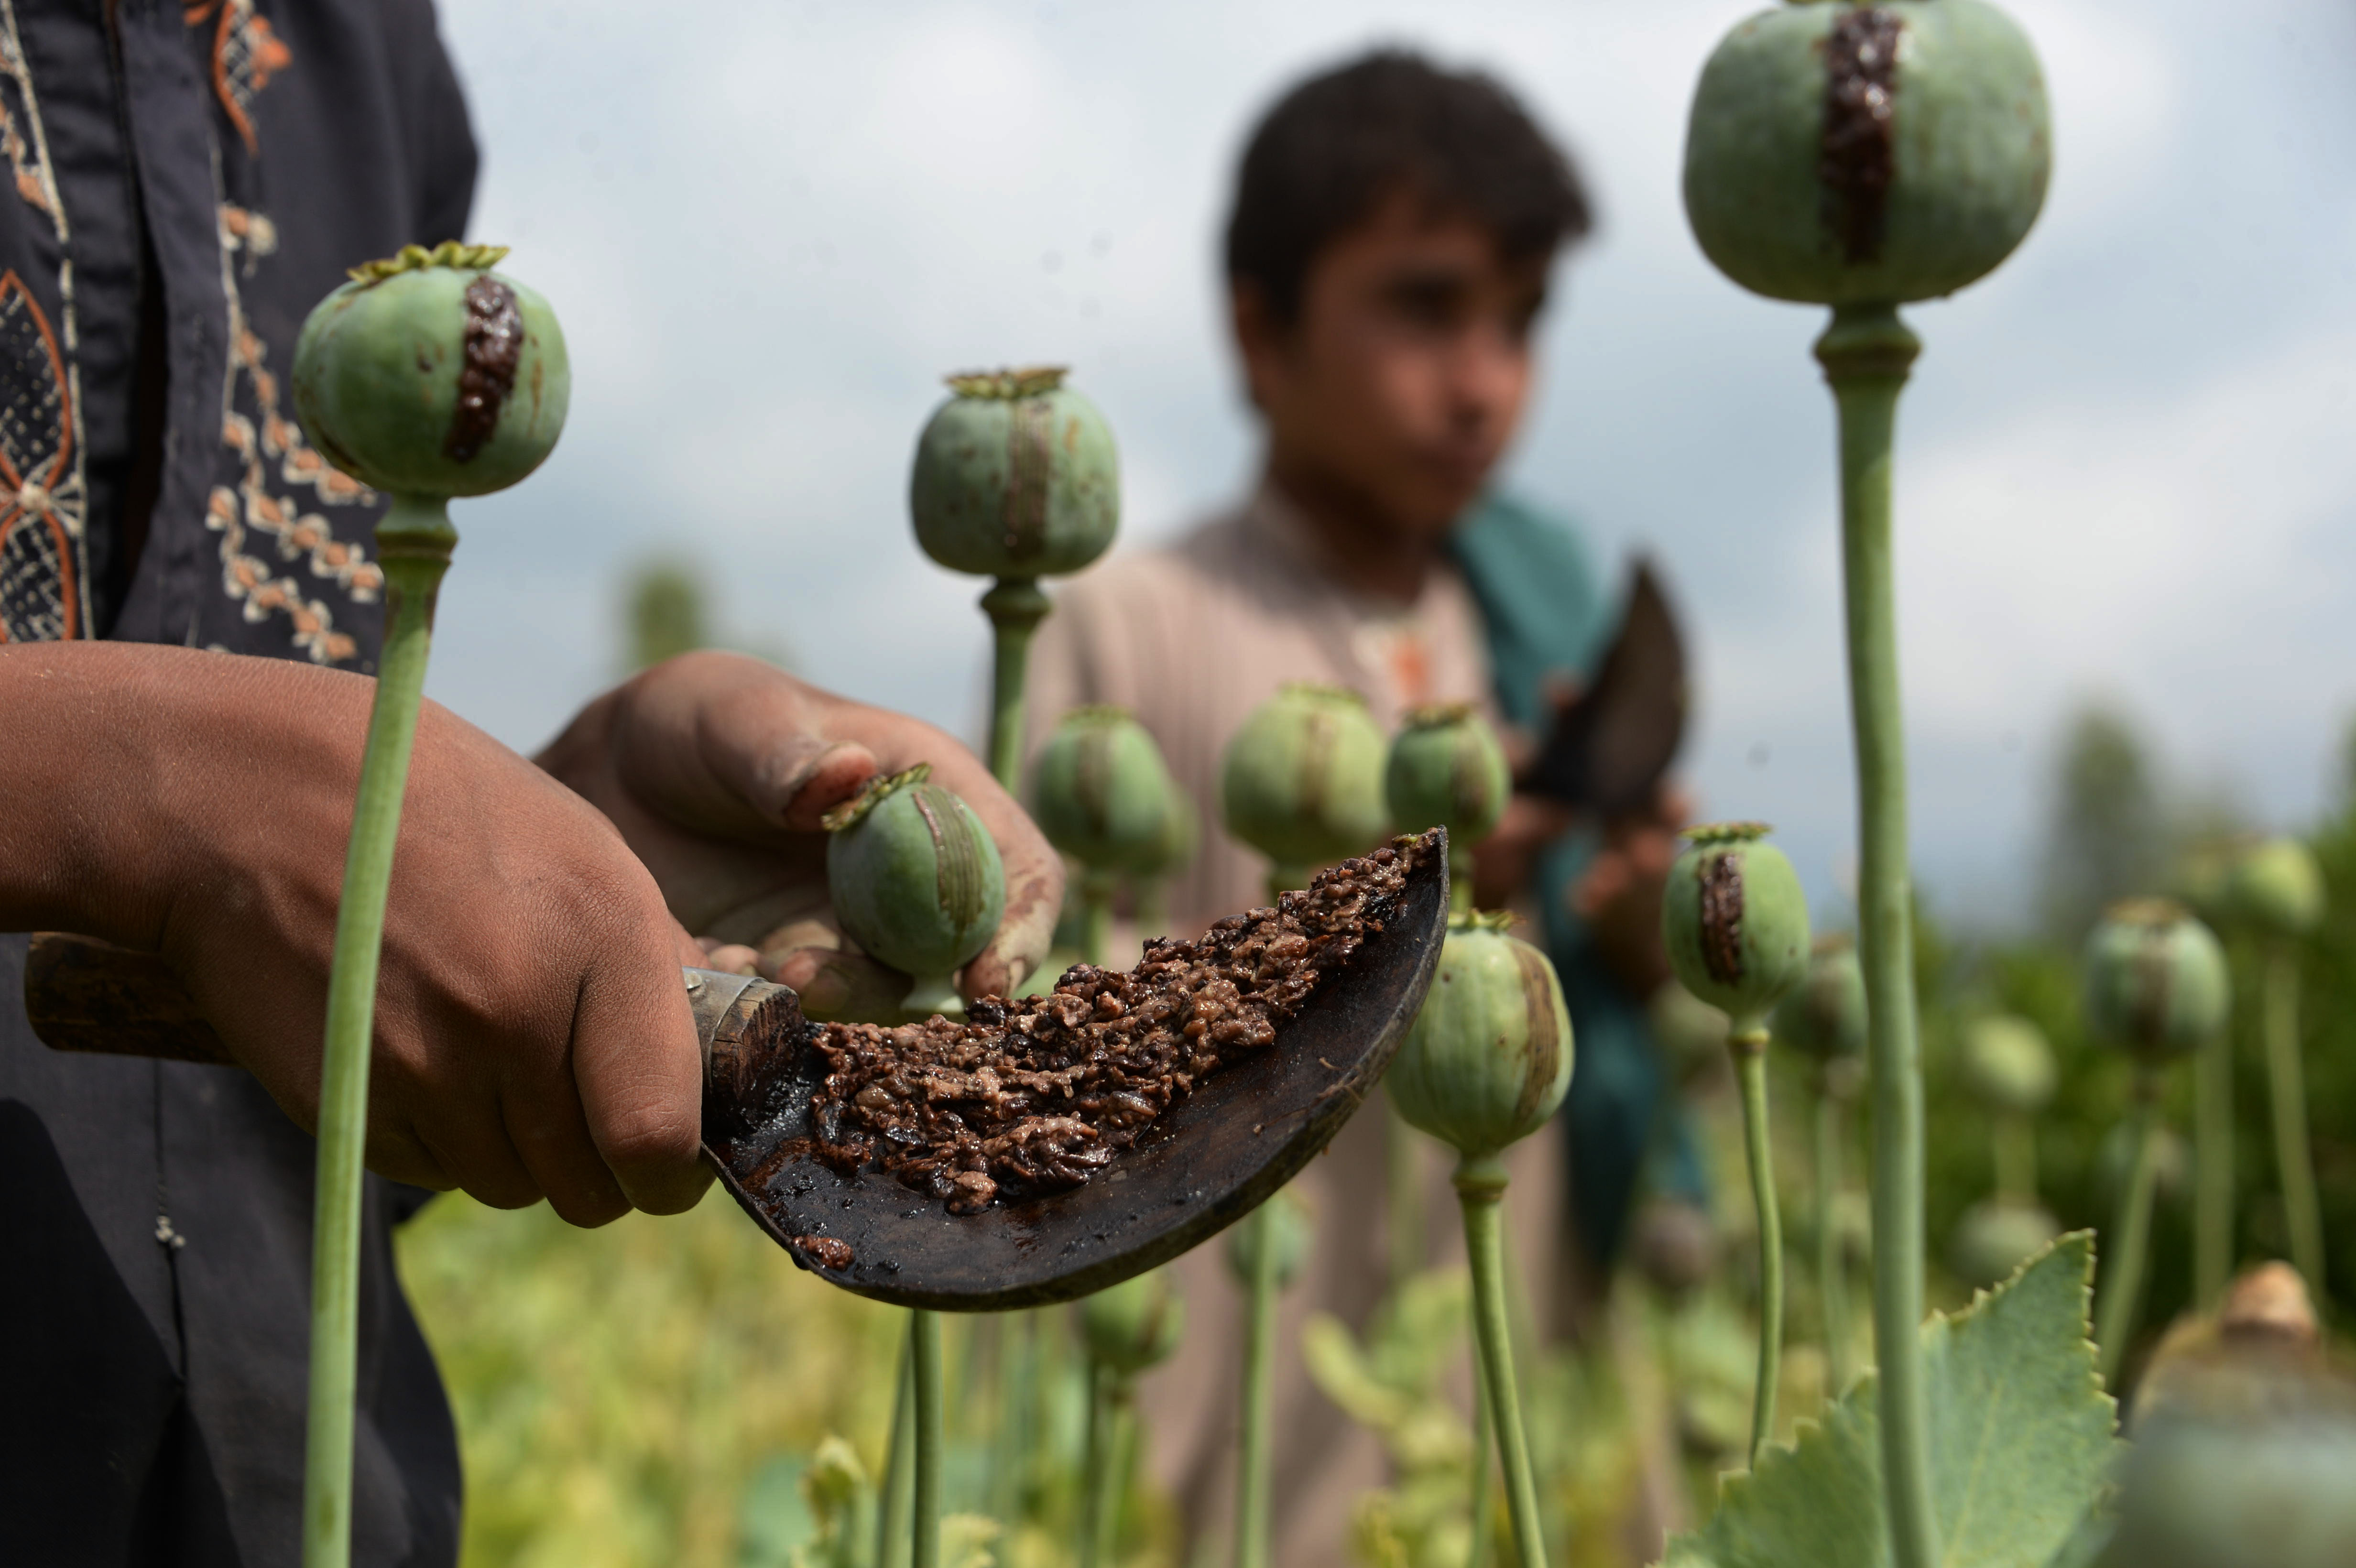 Nangarhar farmers, officials pledge to wipe out poppy crops